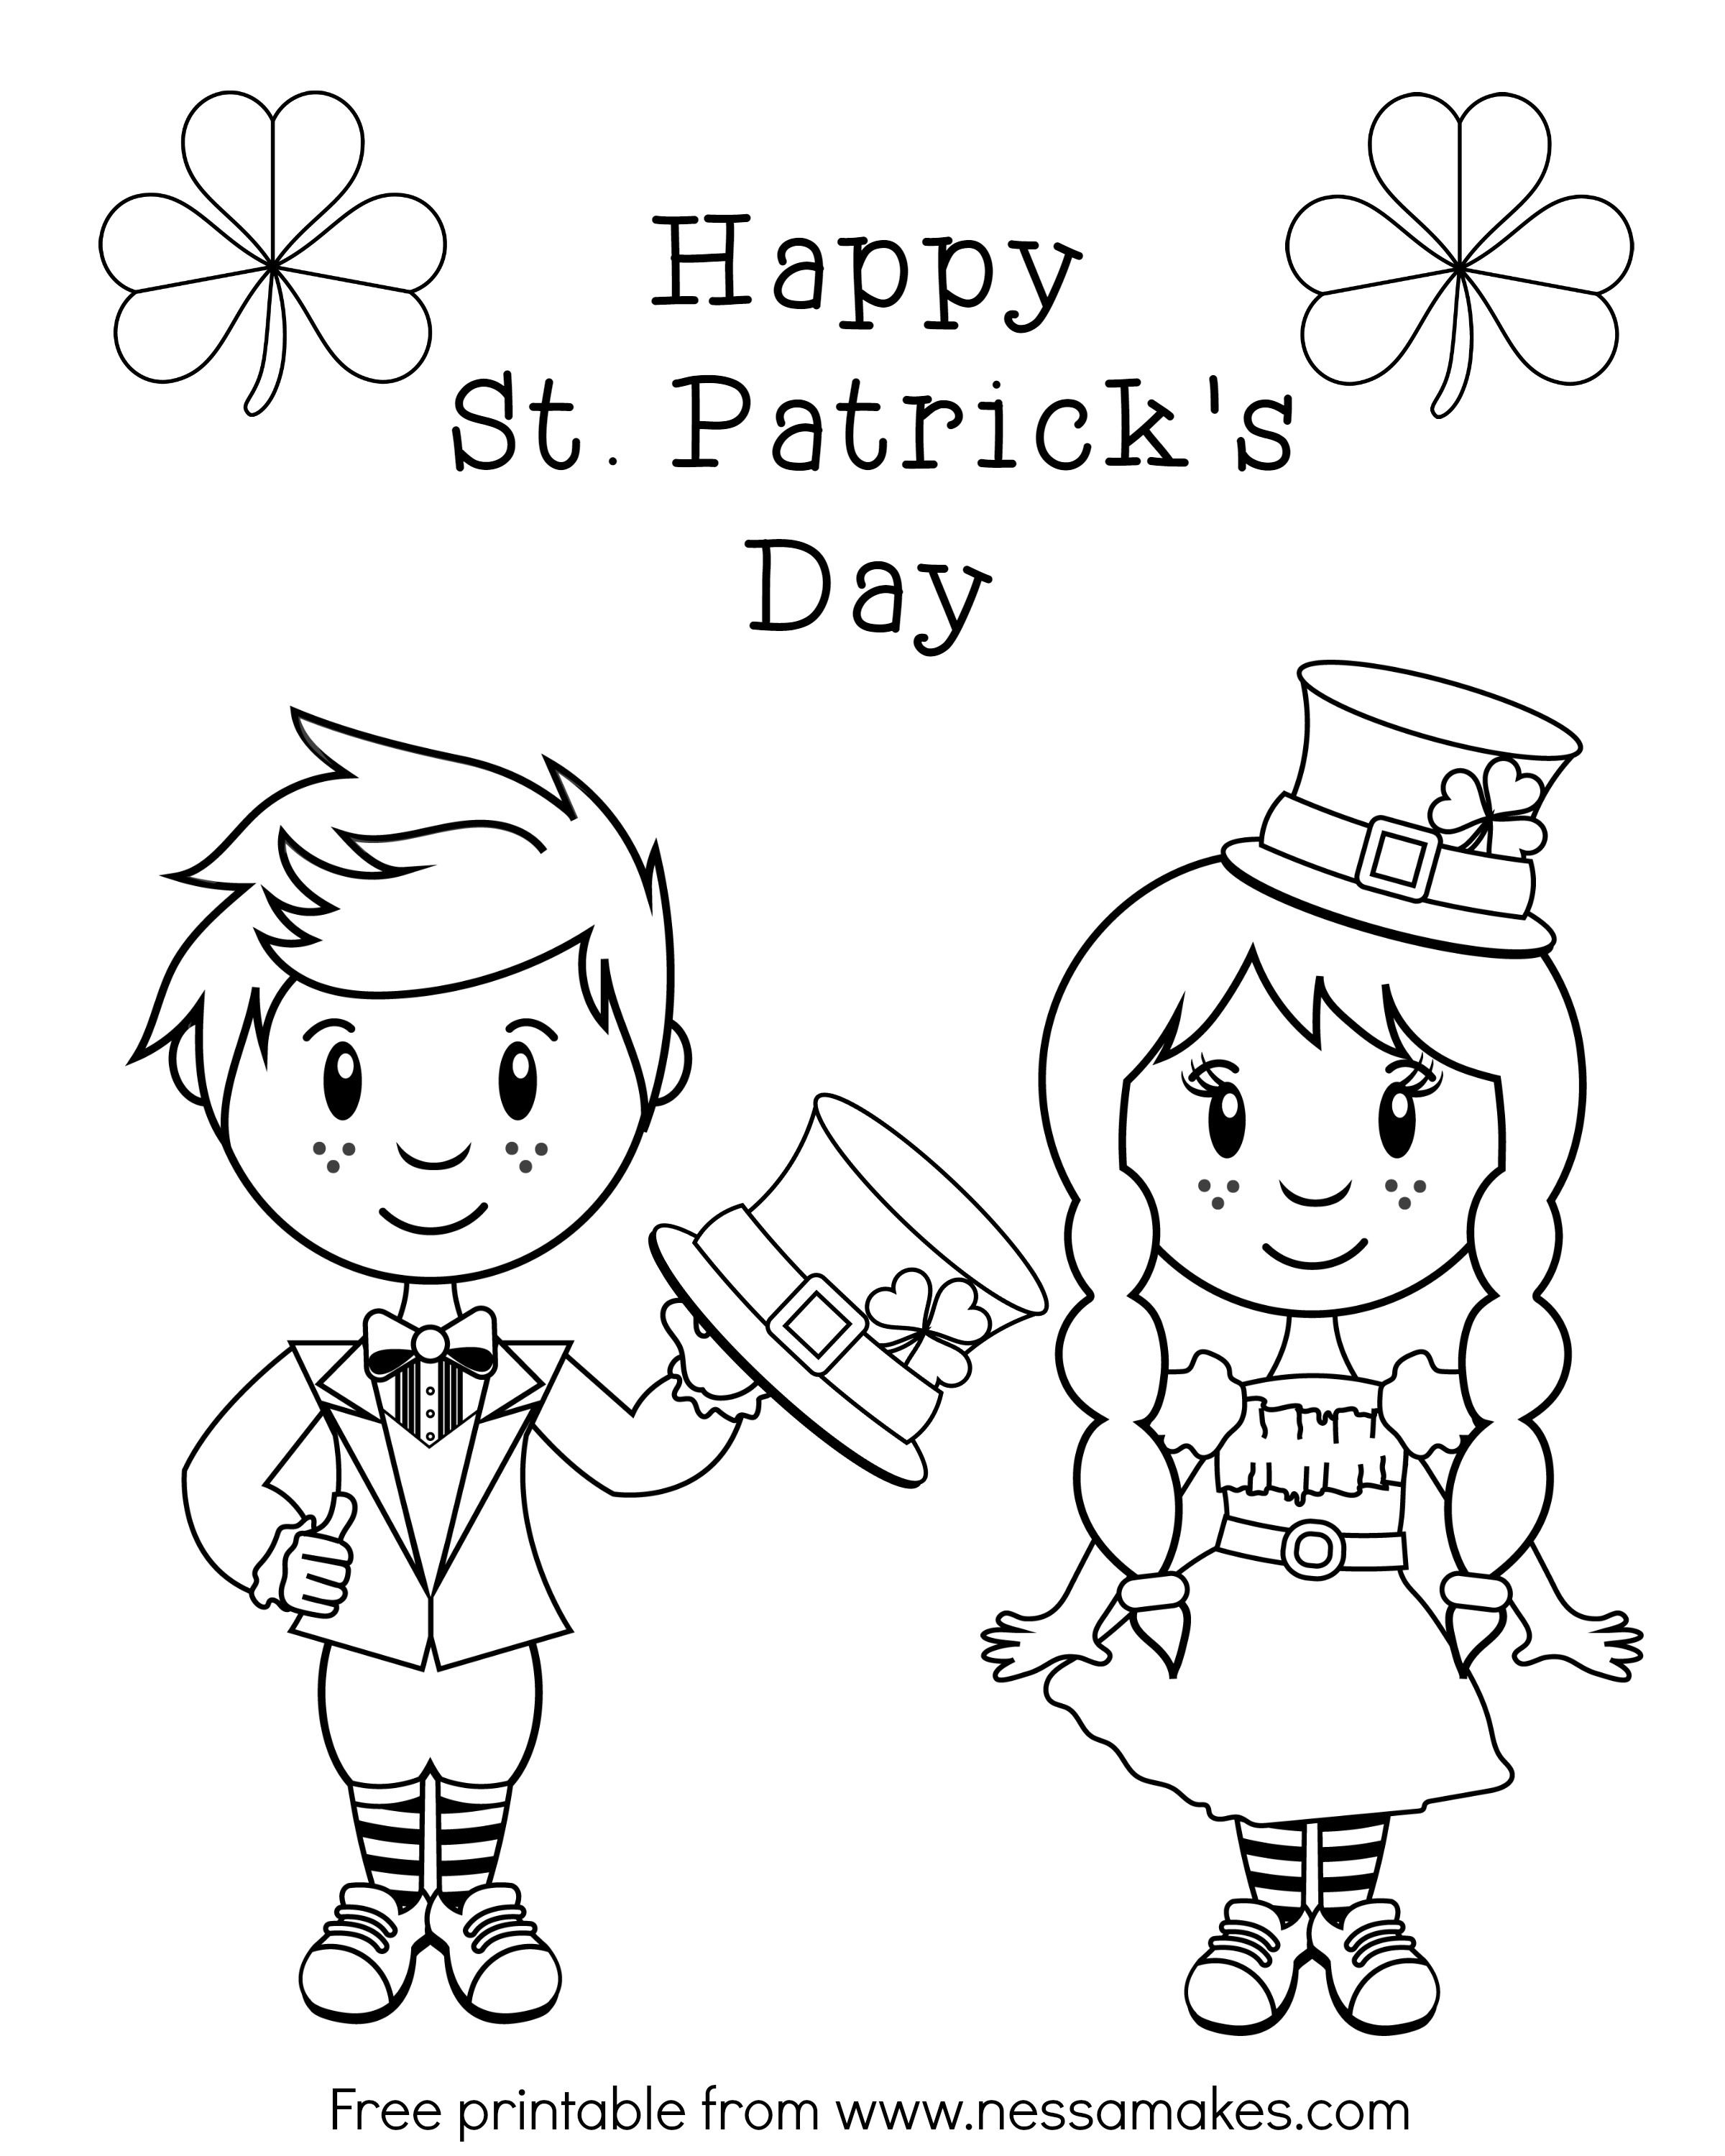 Free Printable St Patrick S Day Color Sheet Nessa Makes Printables Free Kids Coloring Coloring Pages Coloring Pages For Kids [ 3000 x 2400 Pixel ]